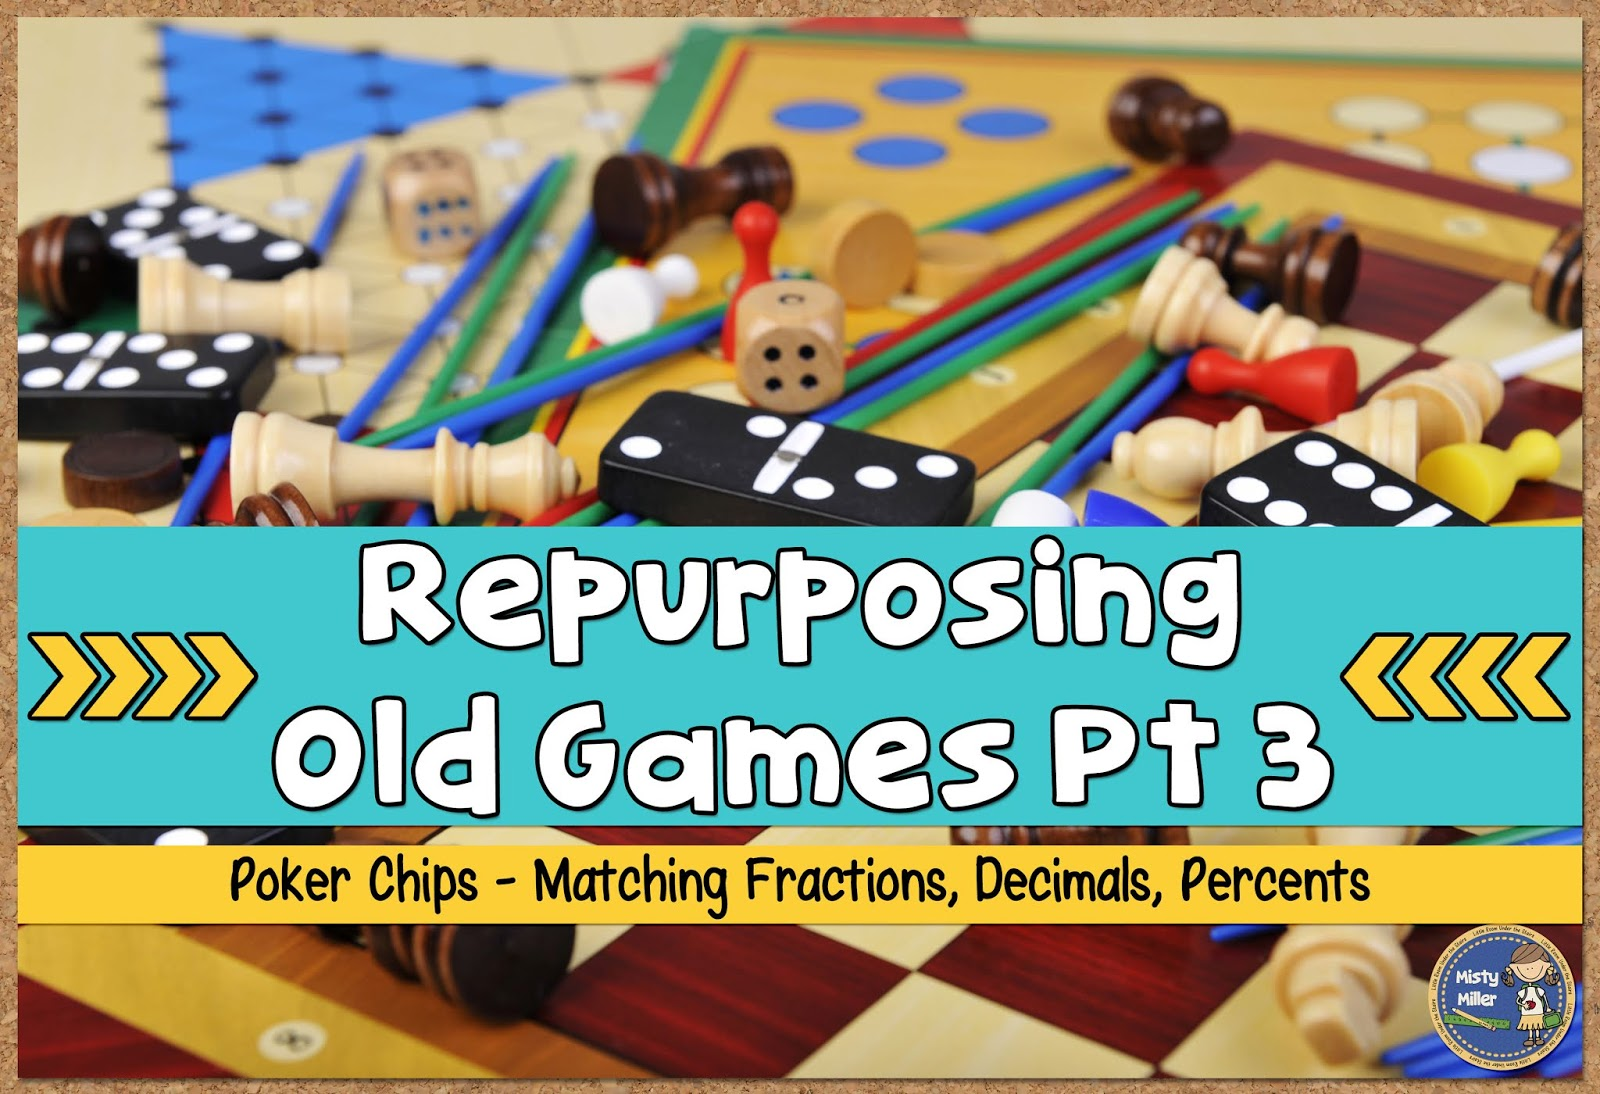 Repurpose Old Games - Poker Chips | Little Room Under the